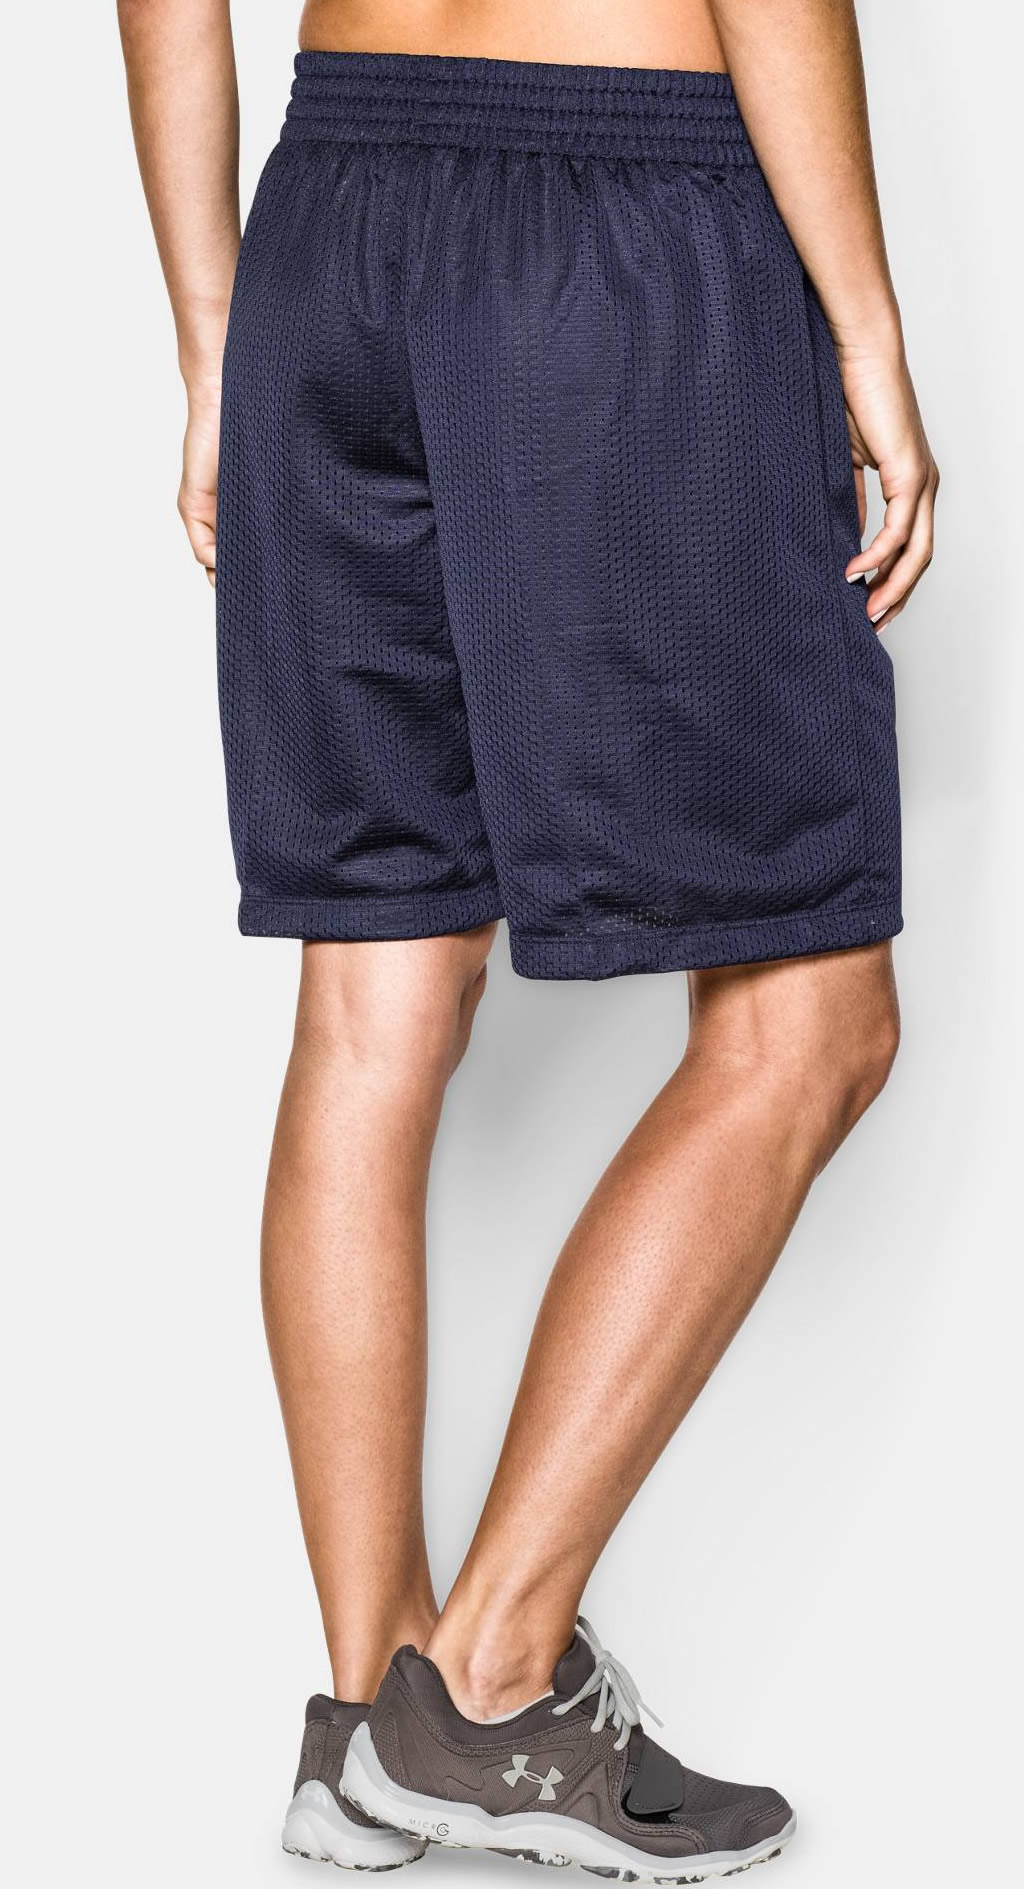 Navy Women's Basketball Shorts by Under Armour